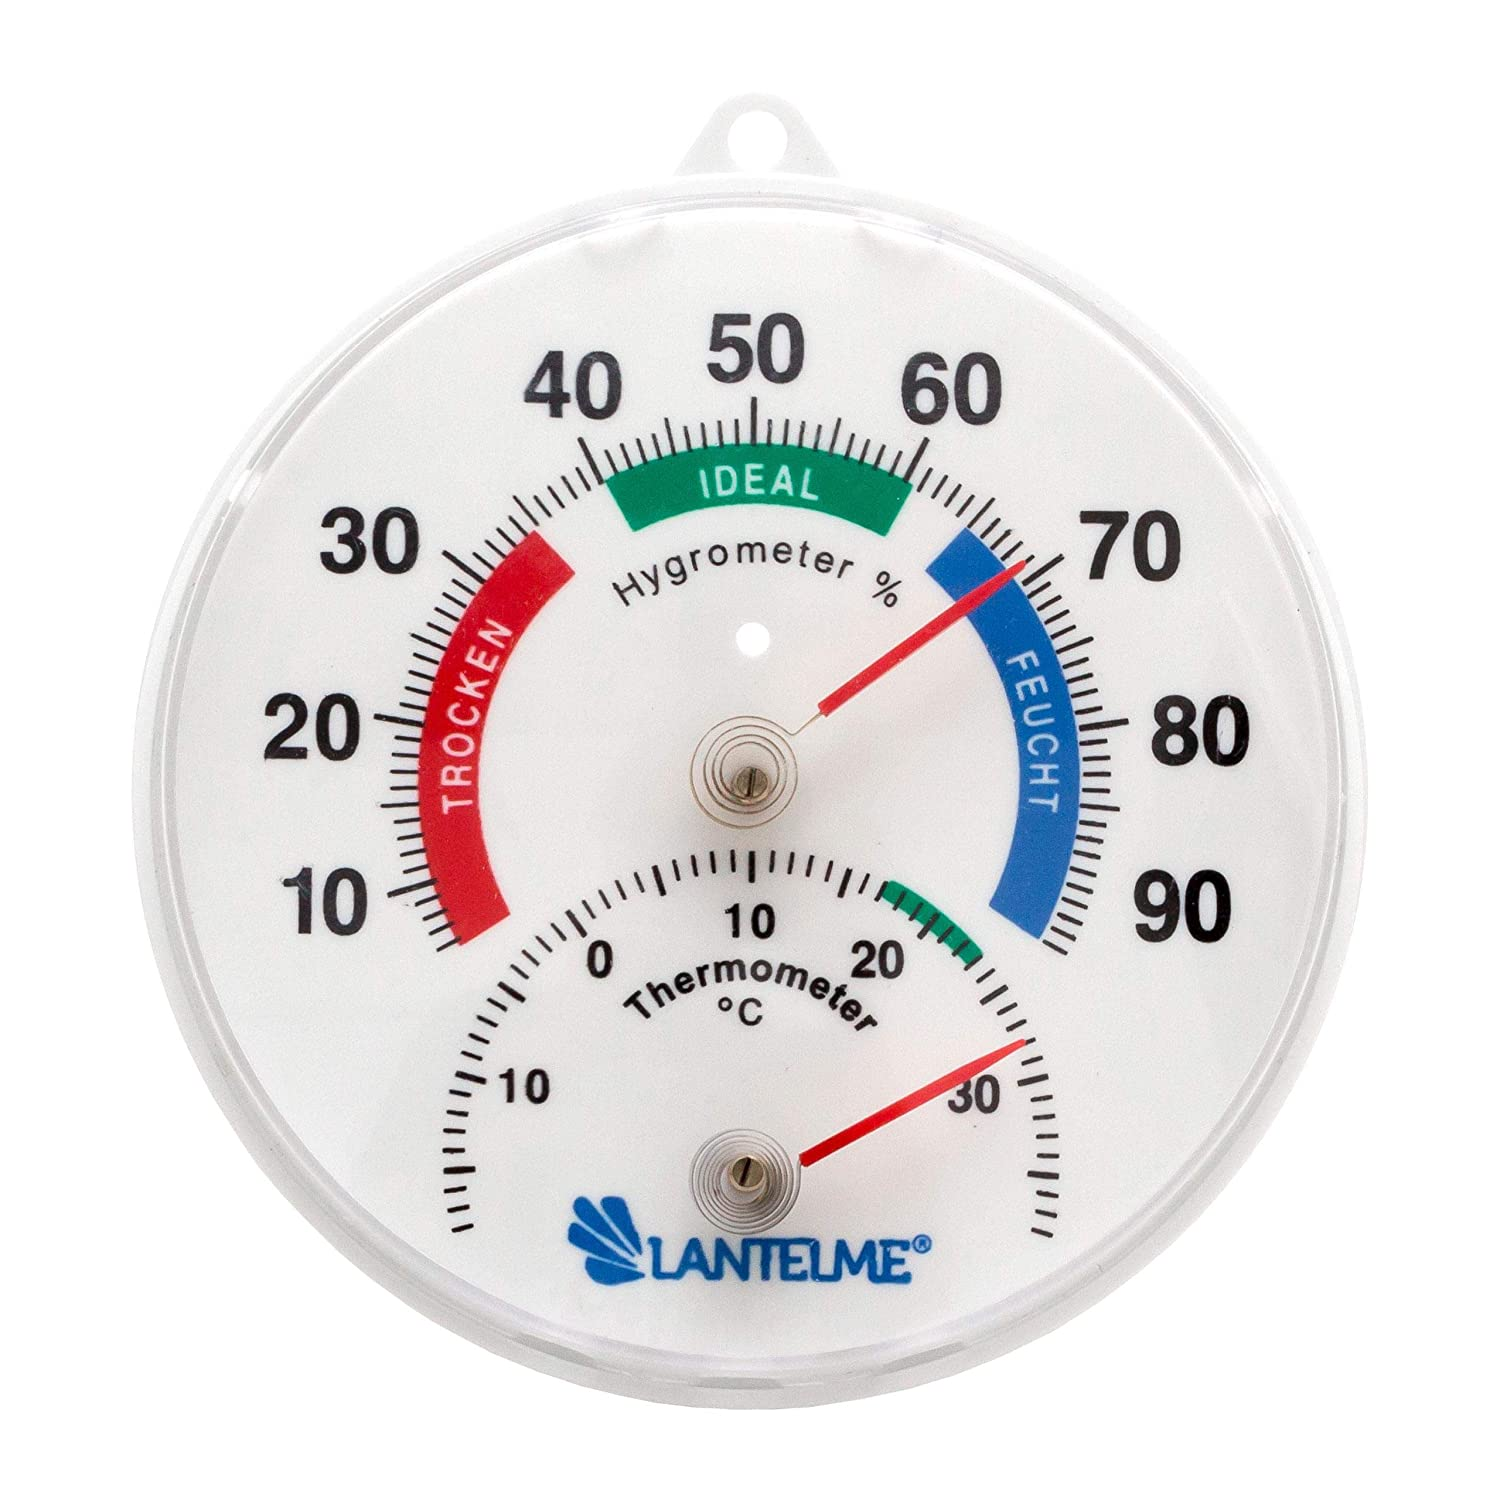 Lantelme 4127 Thermometer / Hygrometer Analogue Combination Machine for Interior and Exterior Use. Thermohygrometer